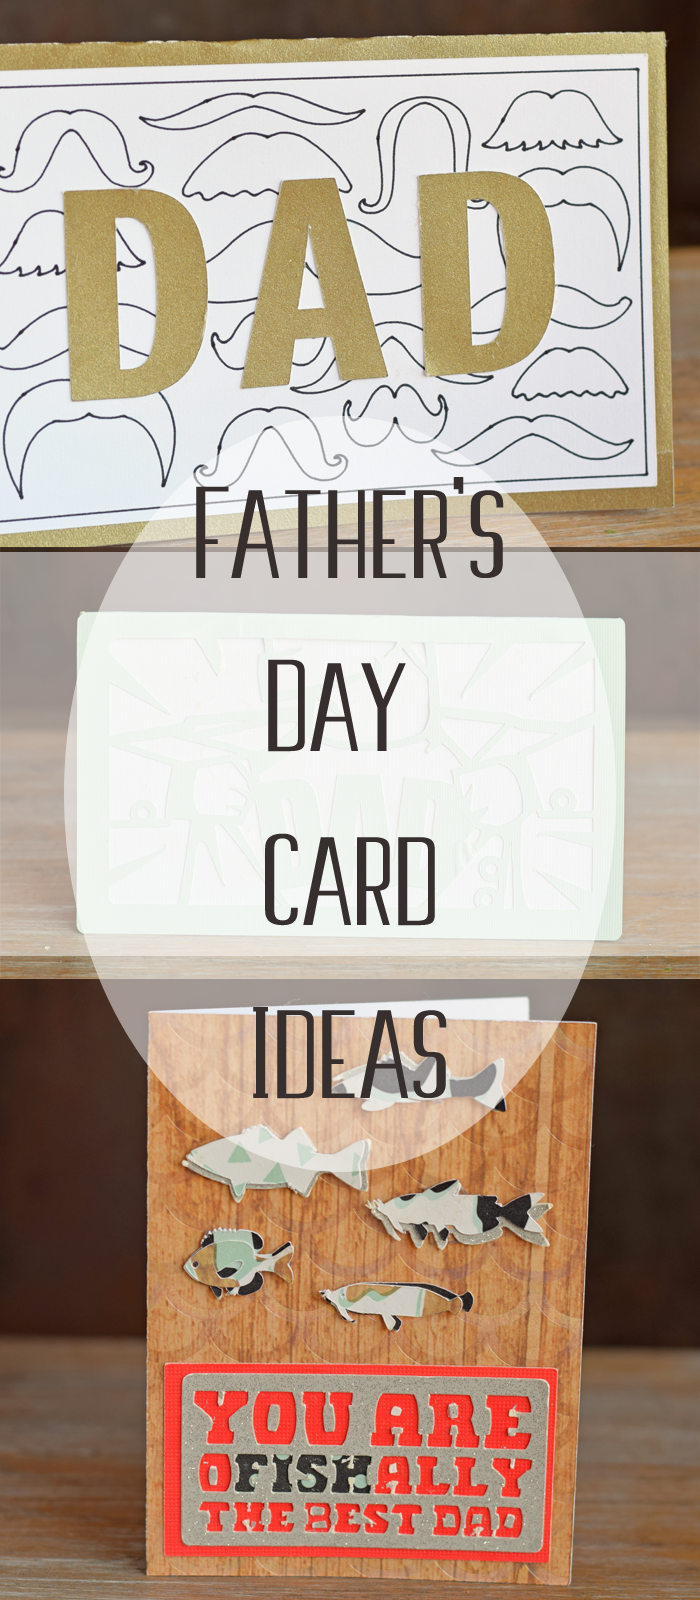 3 Father's Day Card Ideas Made with the Cricut